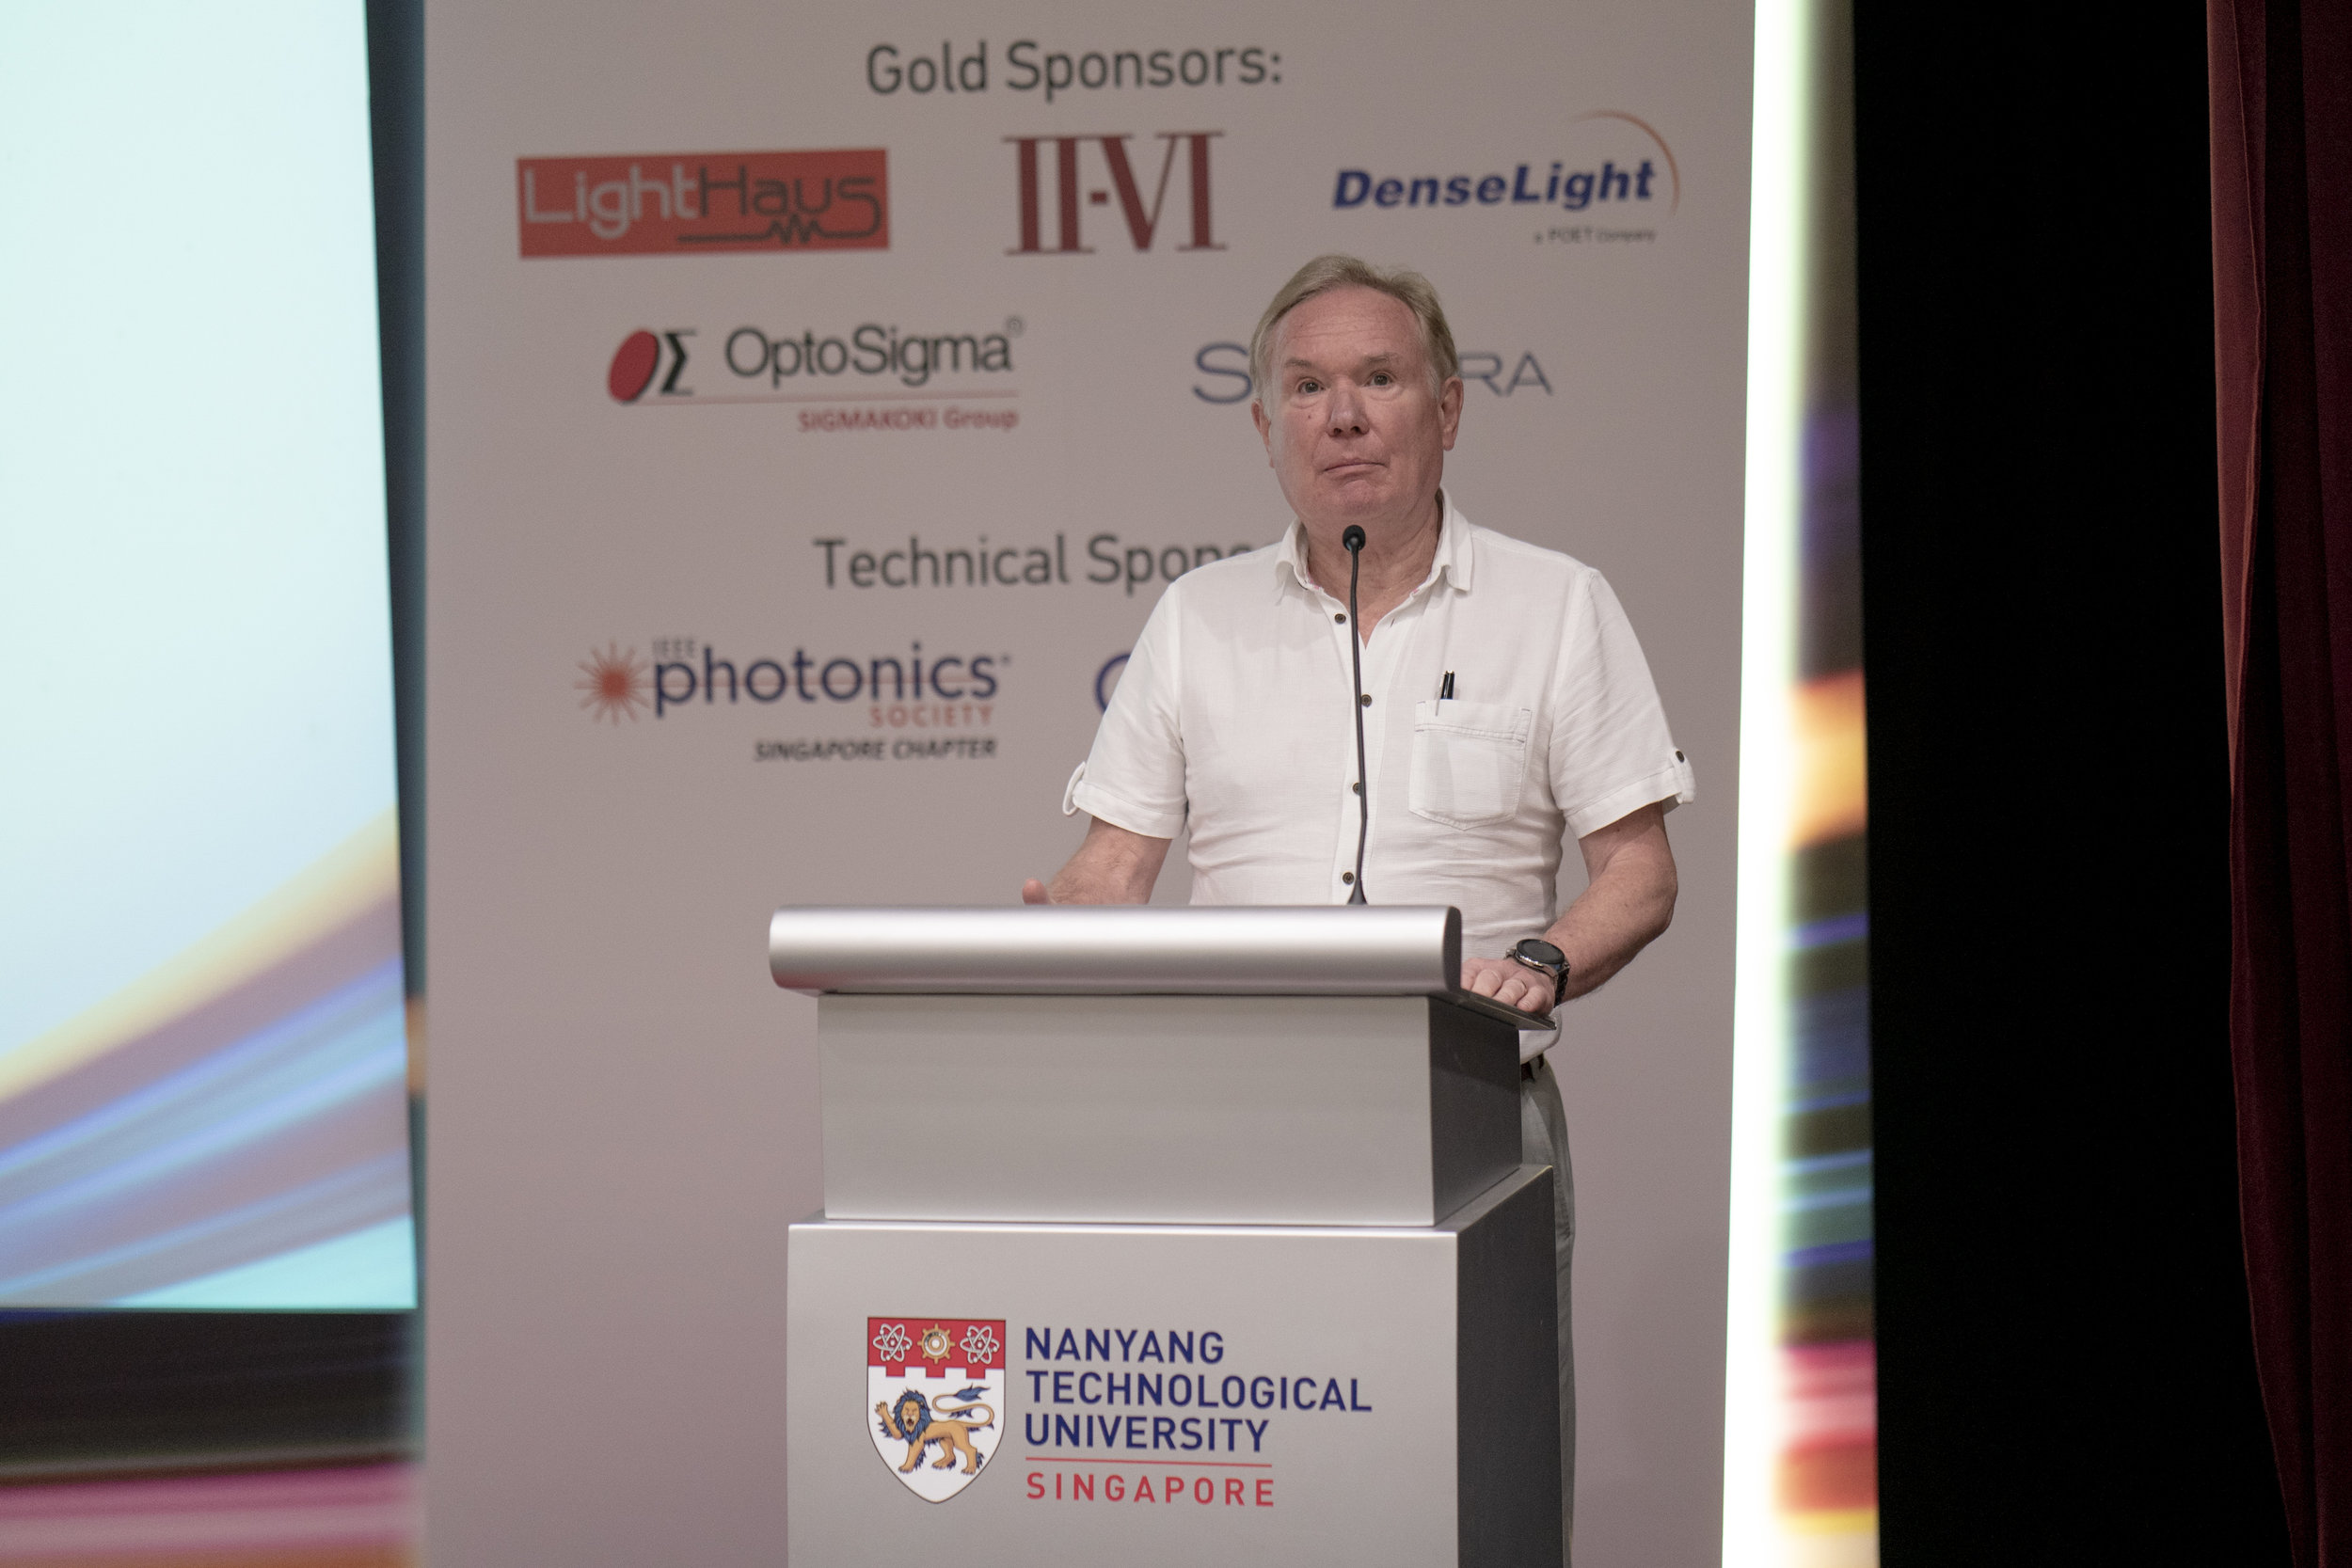 TPI Photonics SG 2018 Conference n Exhibition 0420rc.jpg